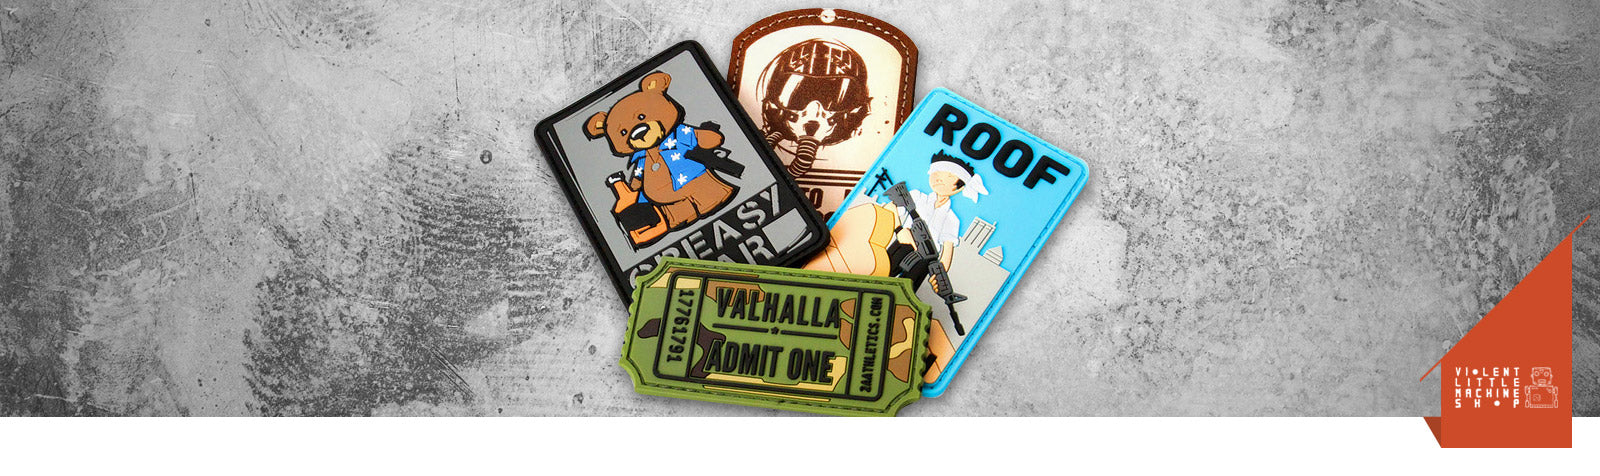 Violent Little Machine Shop Morale Patches USA from Warrior inc Tactical gear